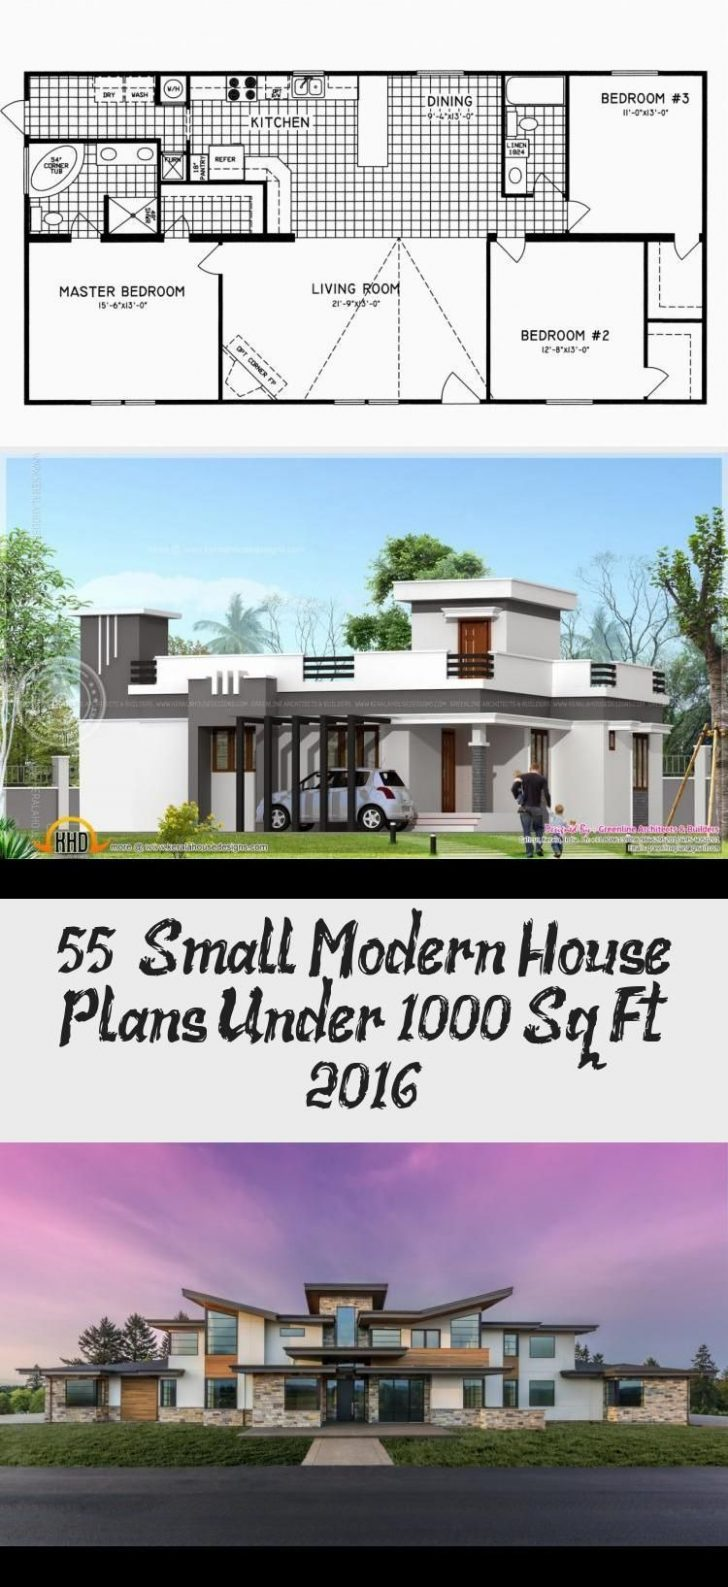 Small Modern House Plans Under 1000 Sq Ft 2021